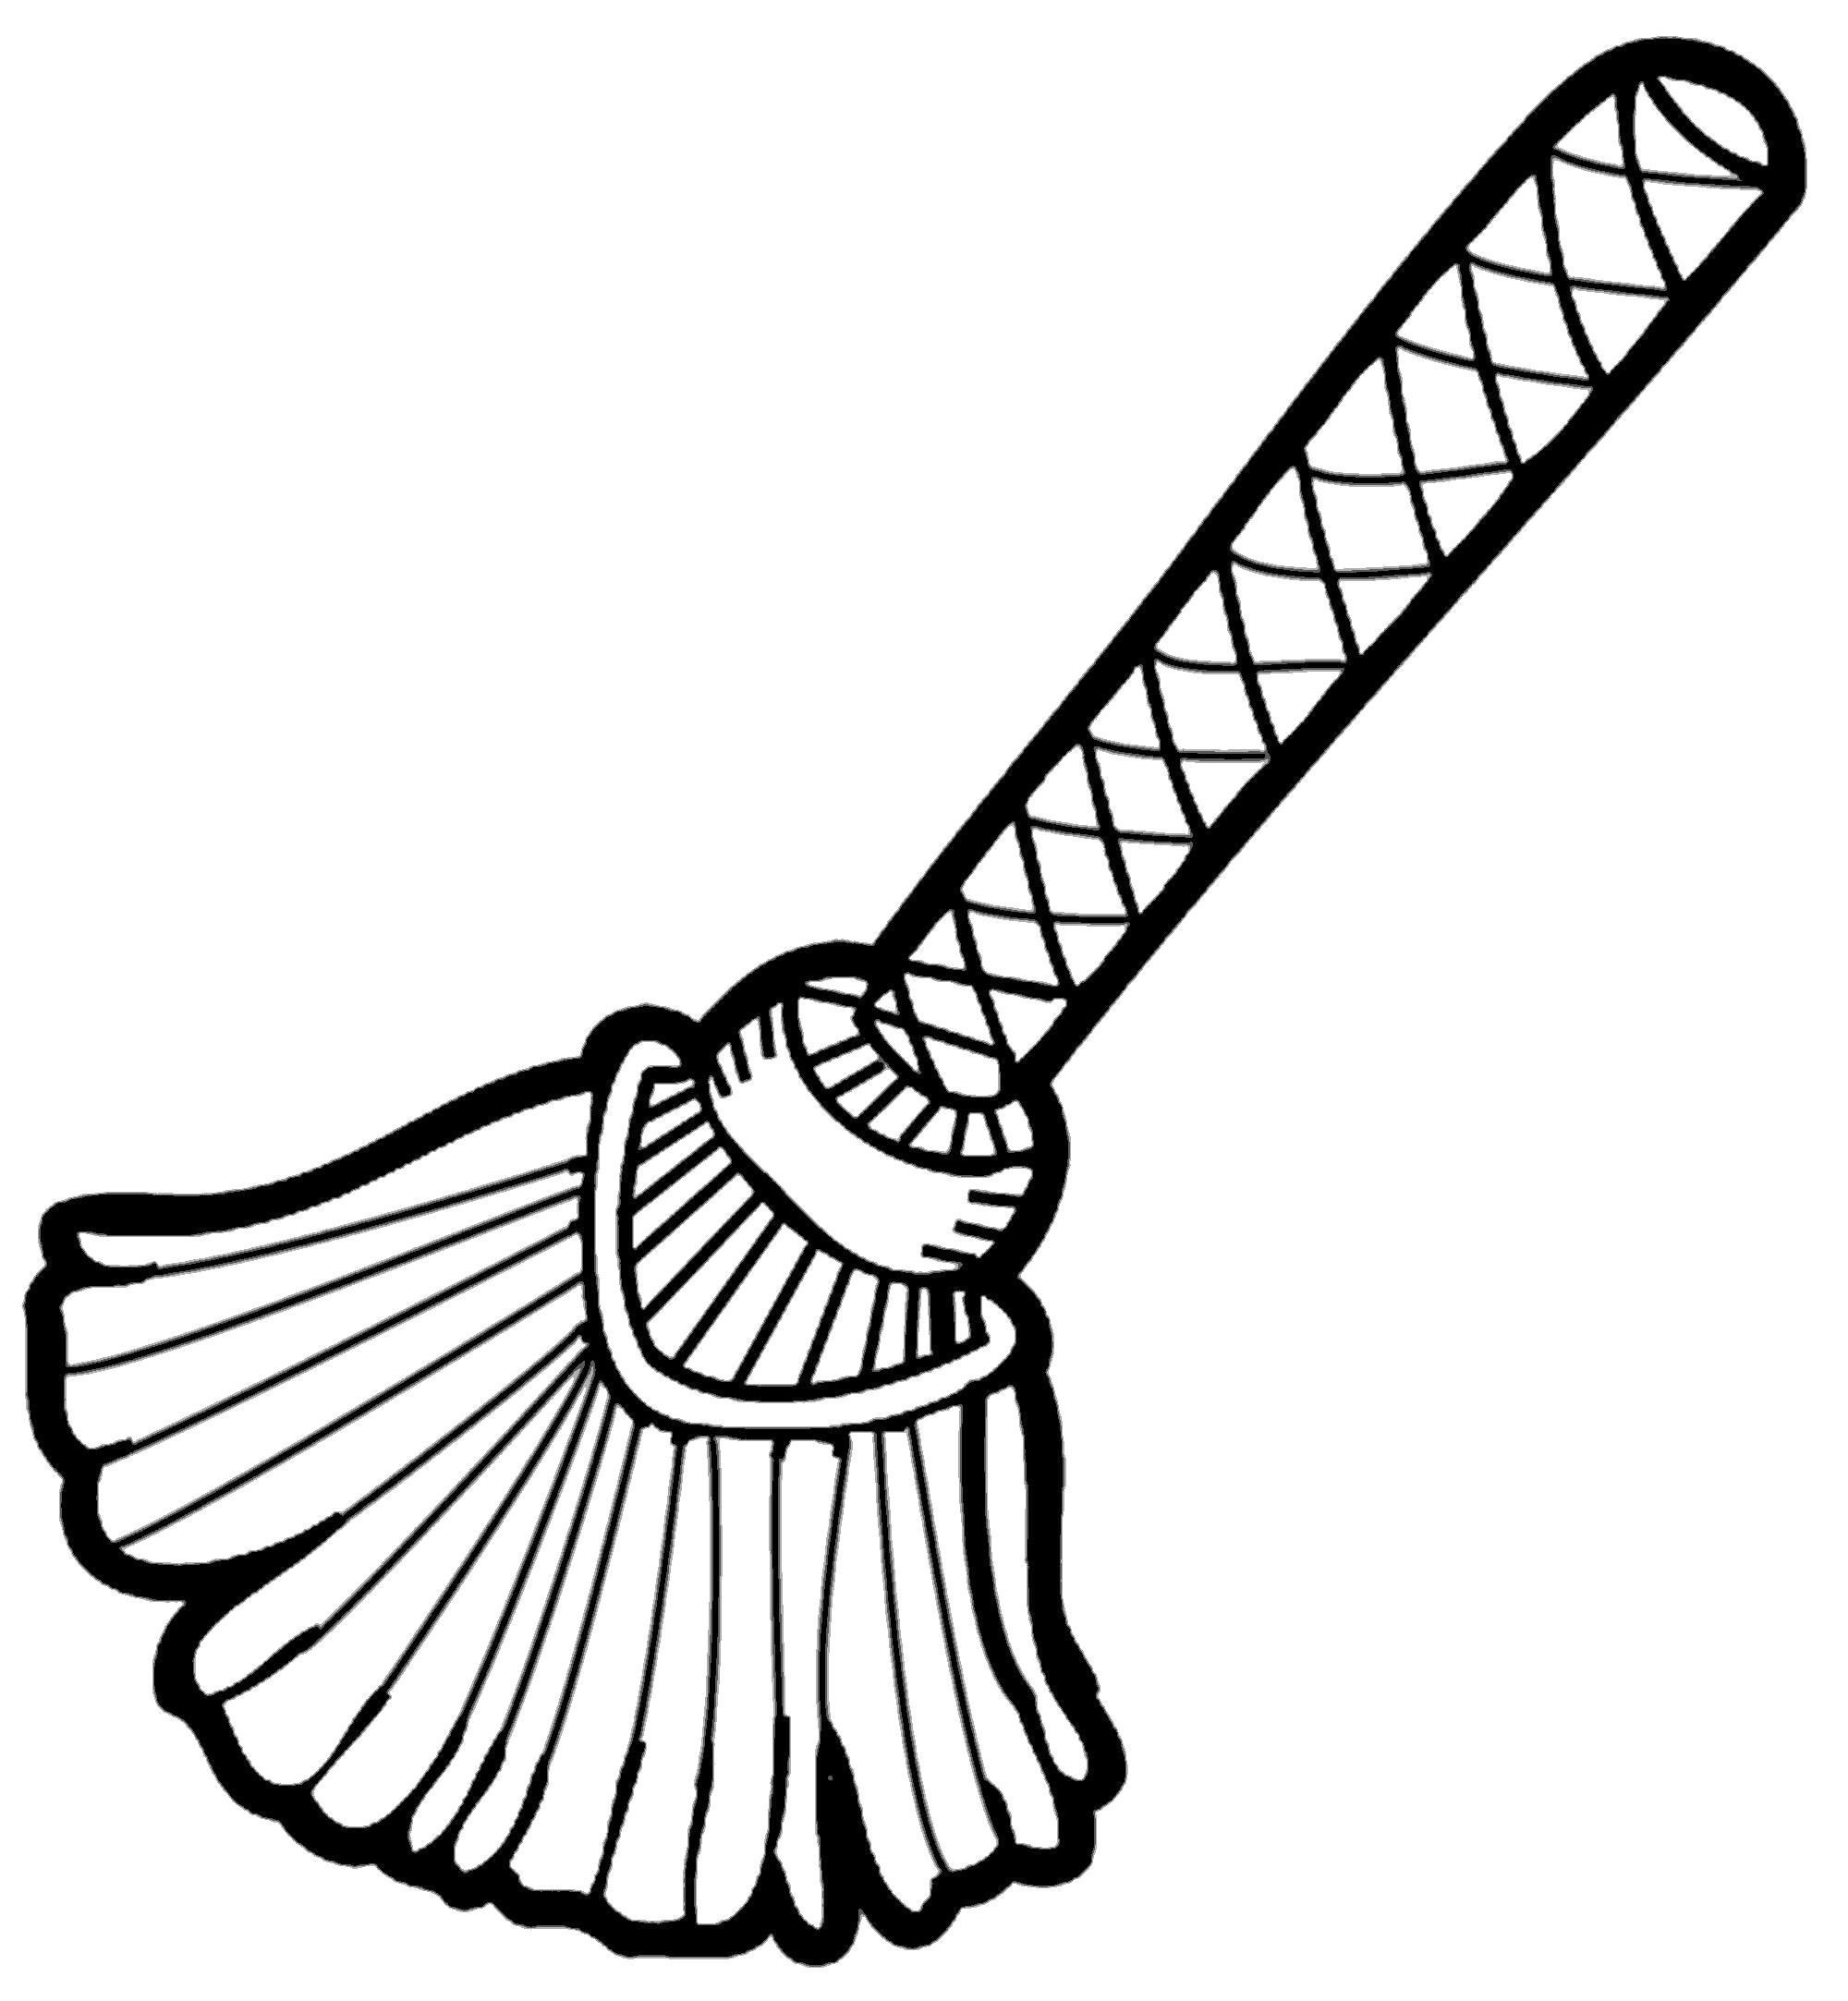 Broom black and white clipart 6 » Clipart Station.